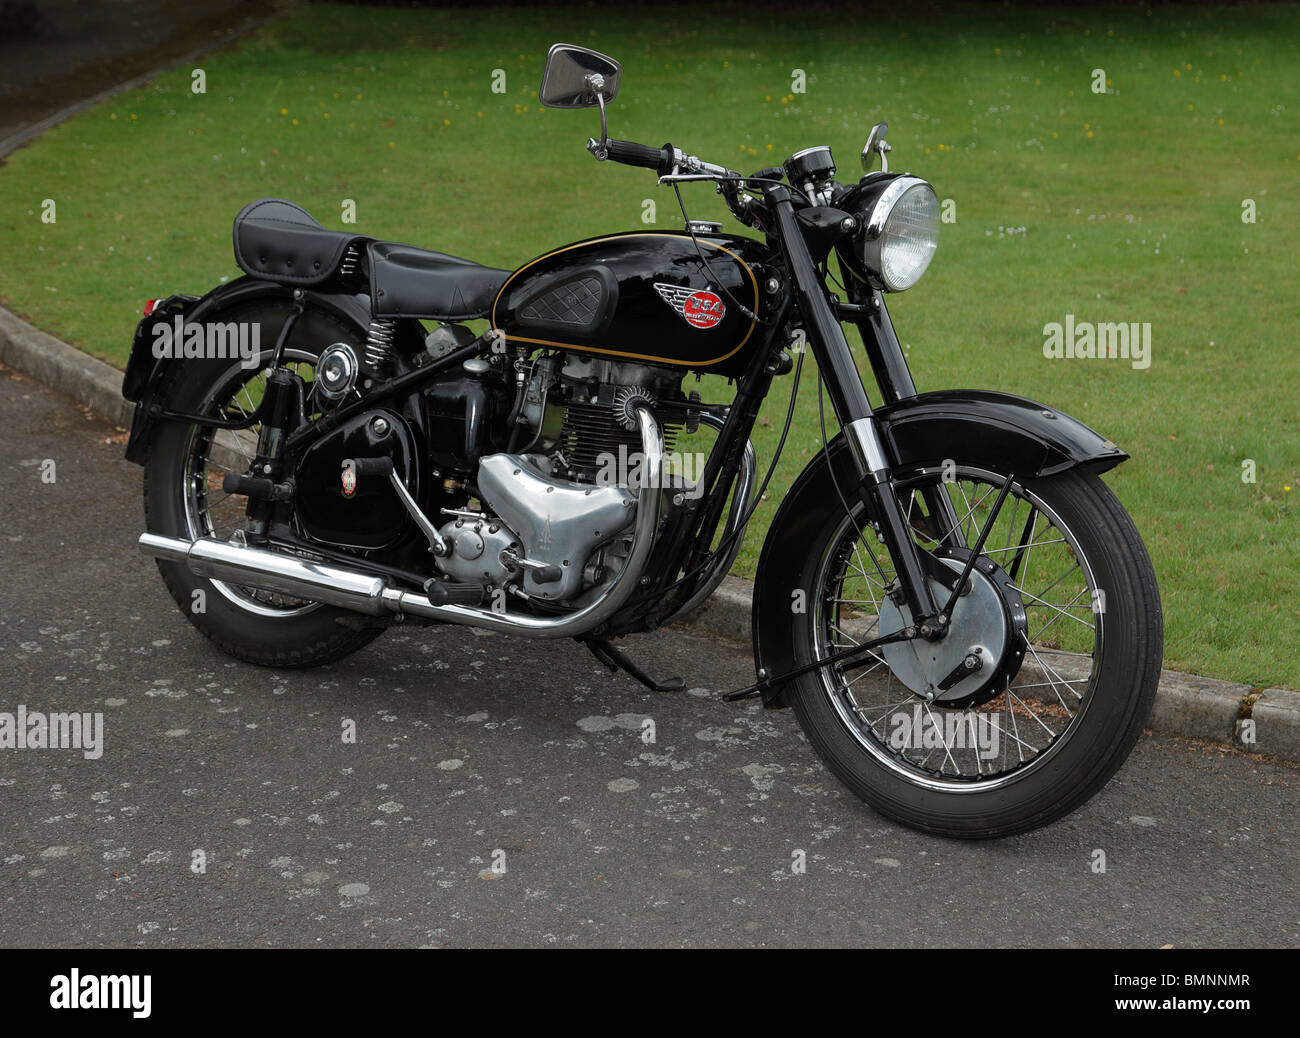 Vintage BSA Golden Flash motorcycle. - Stock Image